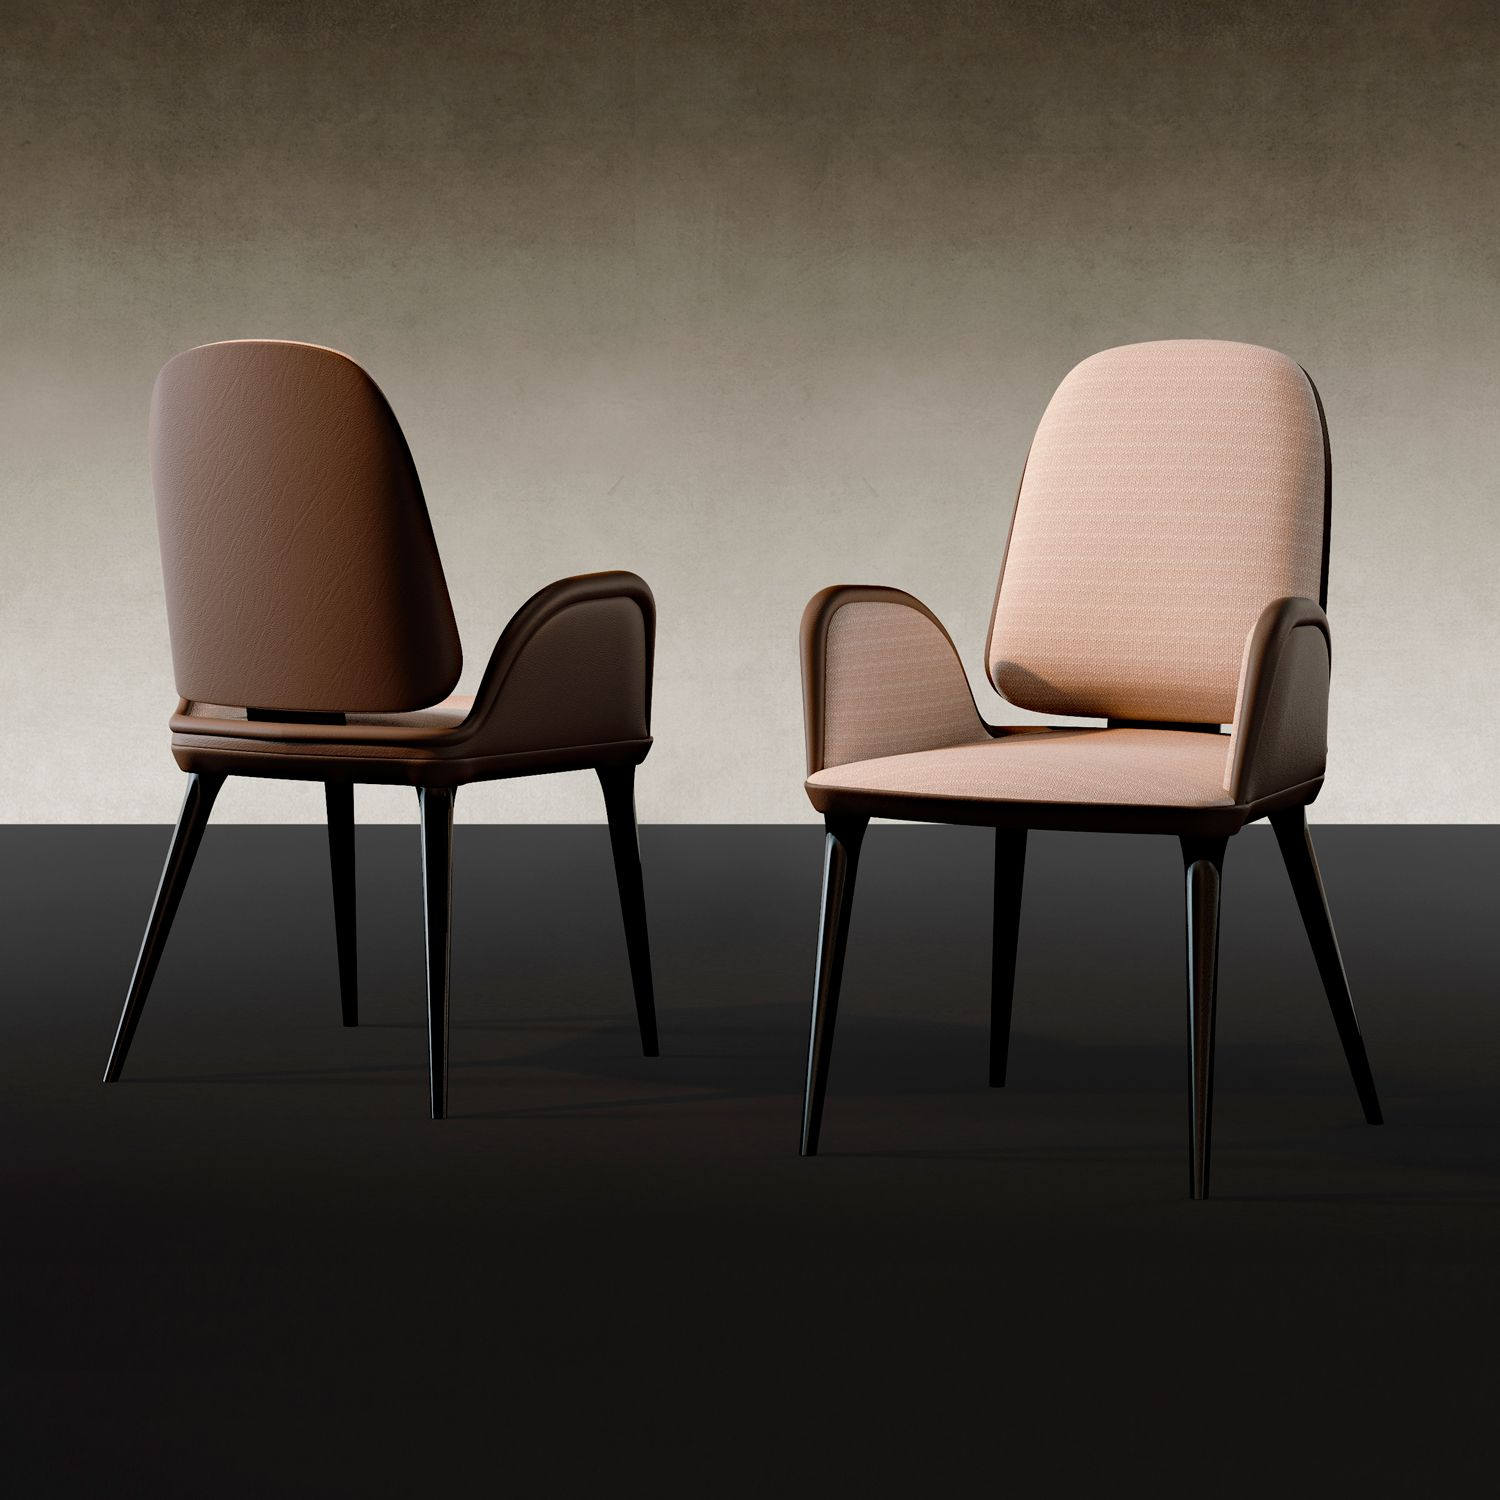 Luxury Contemporary Italian Ark Armchair, Upholstered   Italian Designer U0026  Luxury Furniture At Cassoni.com